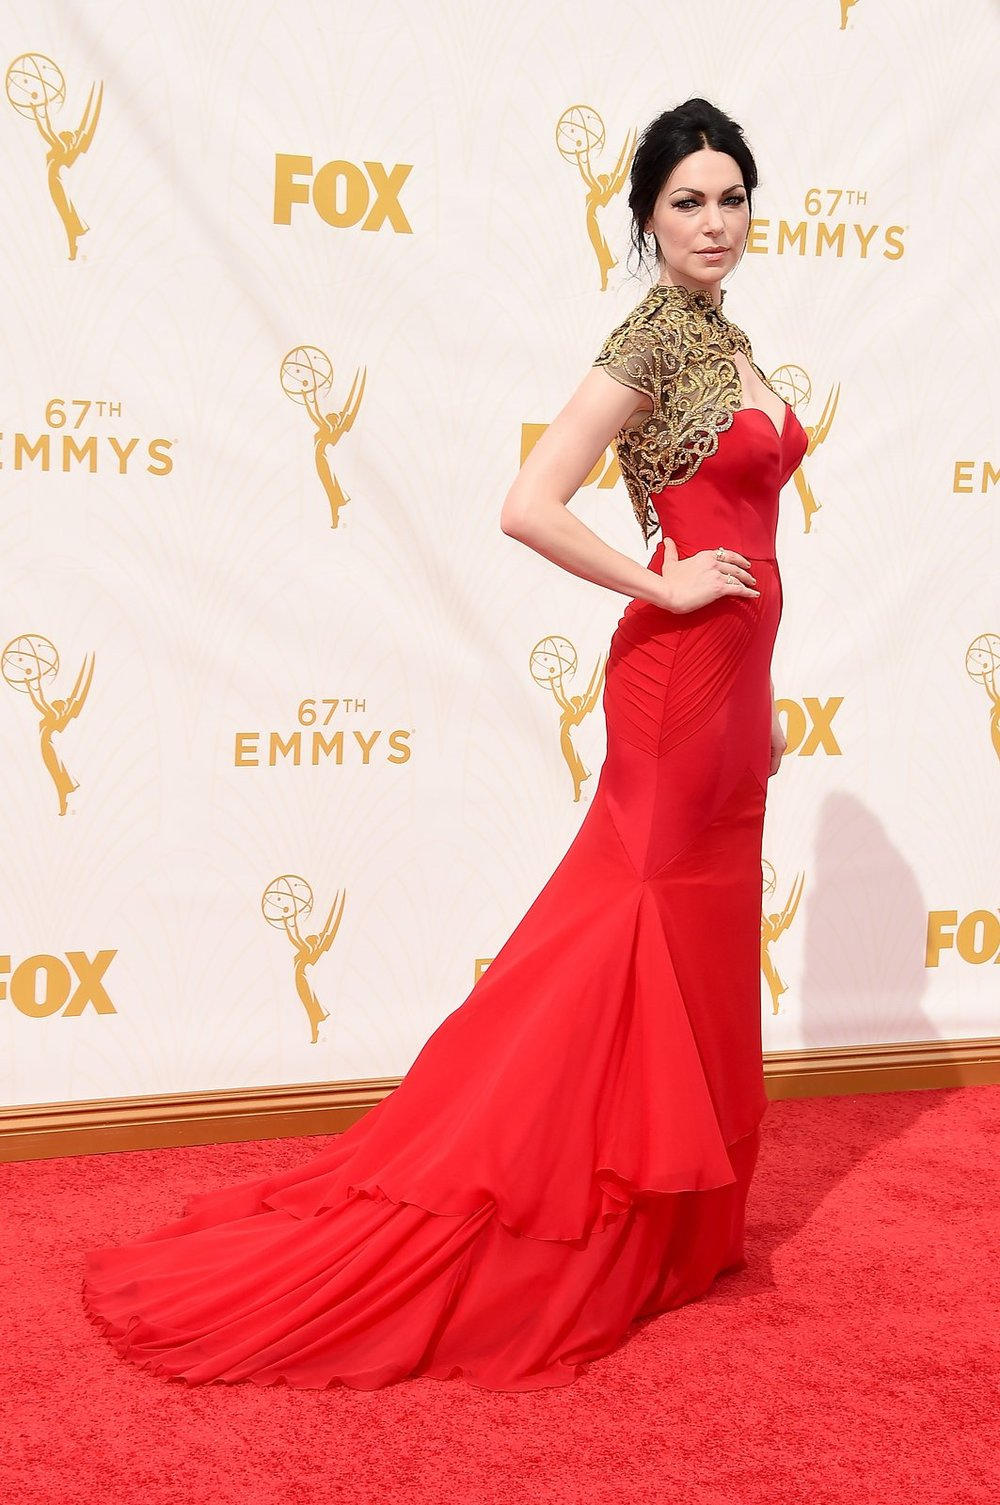 laura-prepon-emmys-red-carpet-2015.jpg